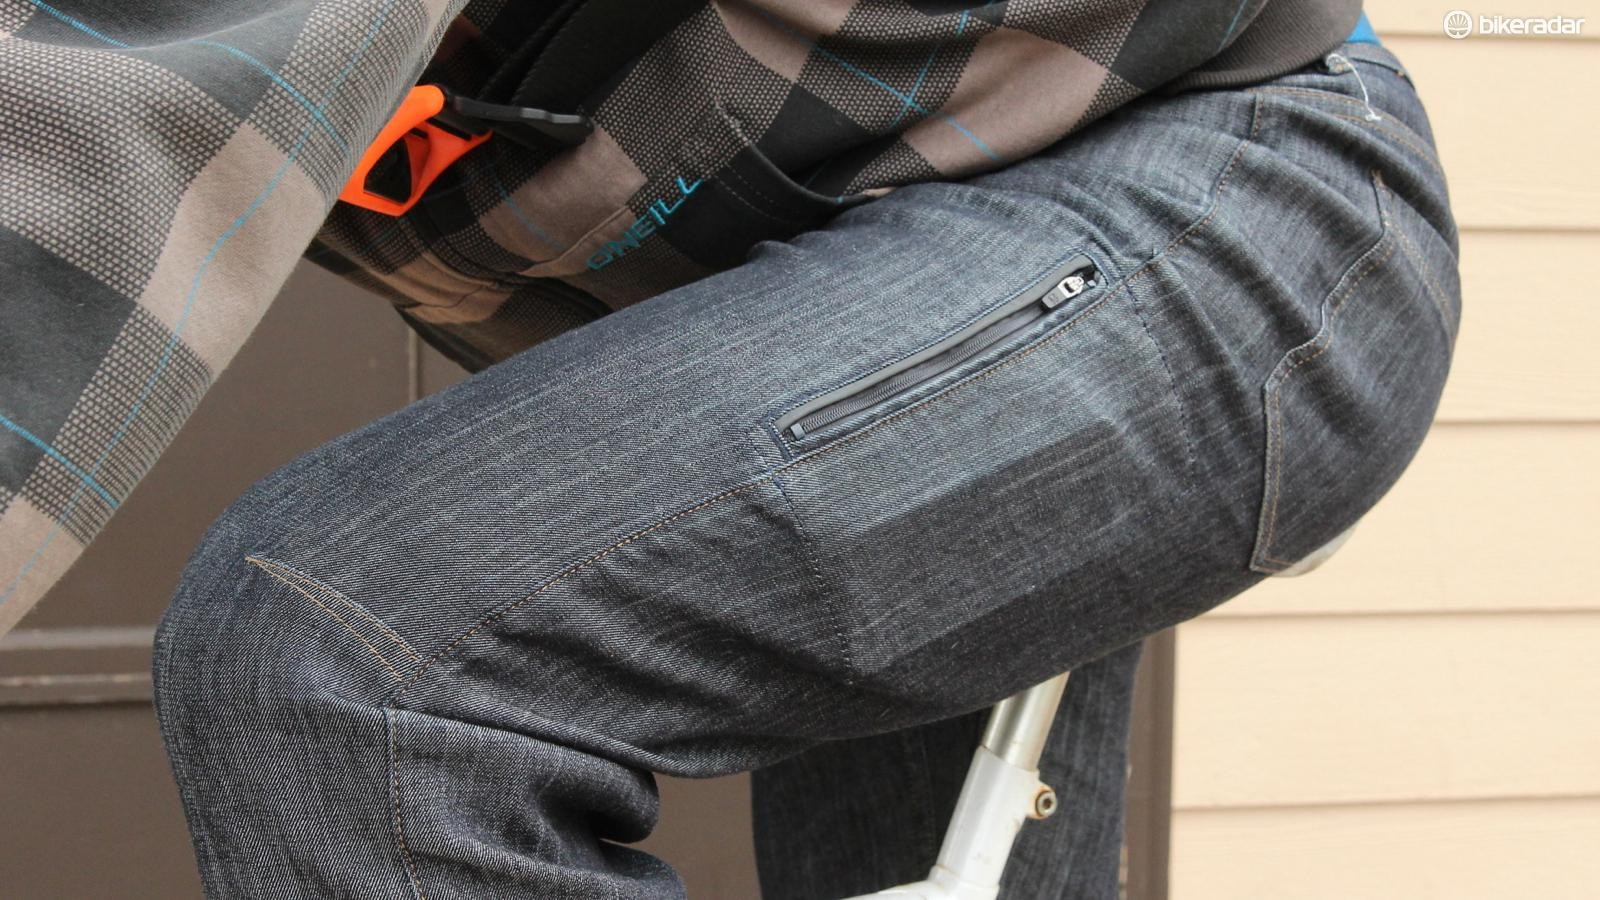 The side-zip phone pocket will make you wish all your jeans had such a feature